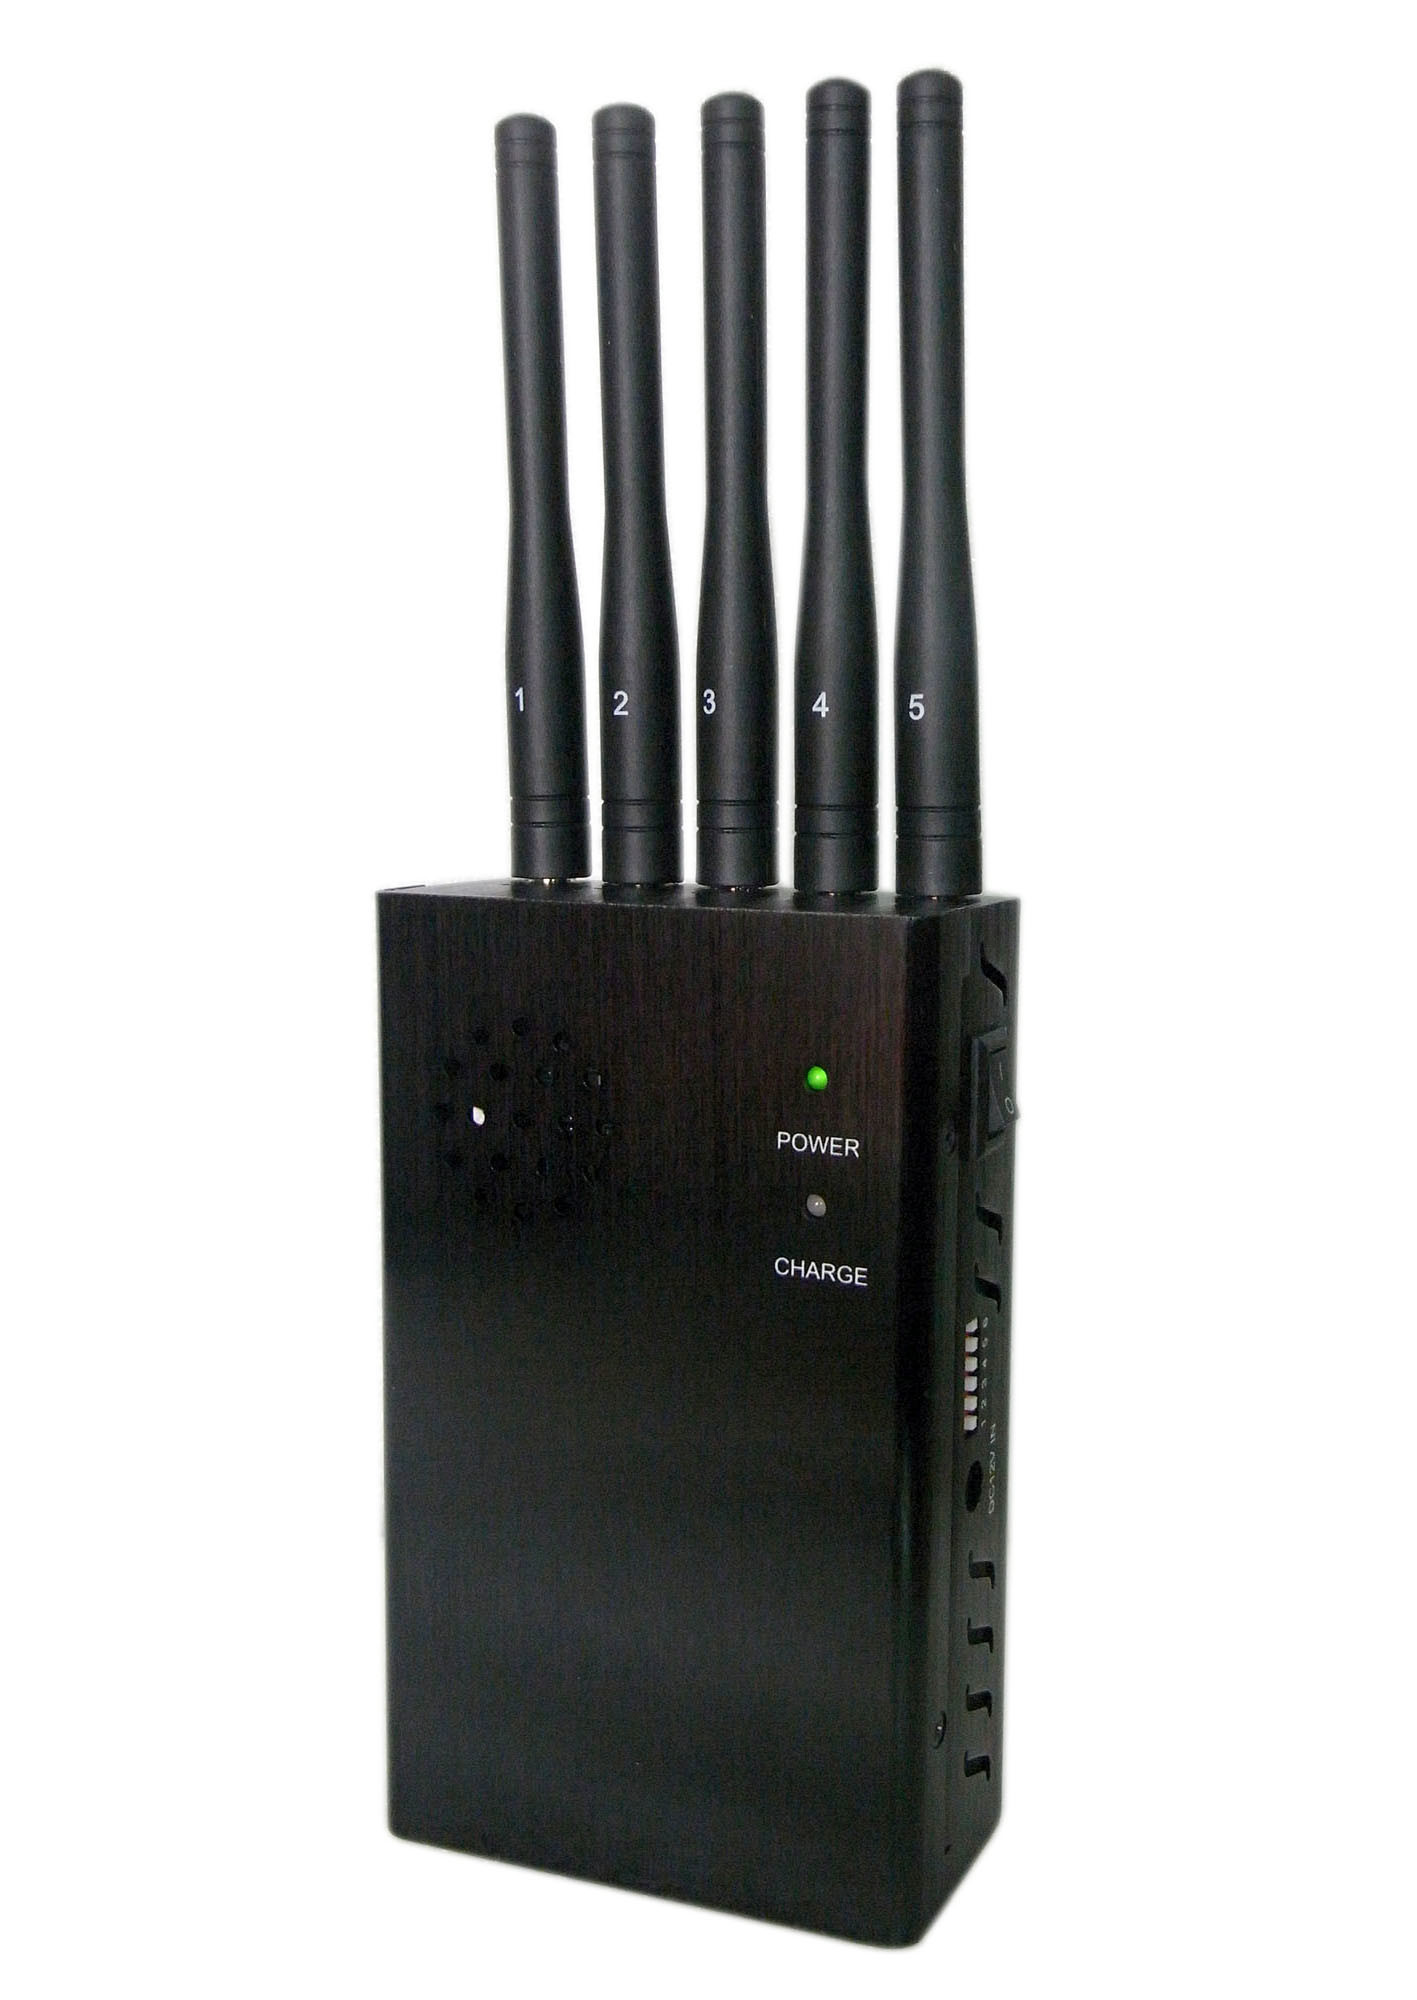 phone reception jammer portable - China New 5 Powerful Antenna 3G 4glte Wimax Signal Jamers, Cell Phone + GPS + WiFi Jammer 5 Antennas - China 5 Band Signal Blockers, Five Antennas Jammers